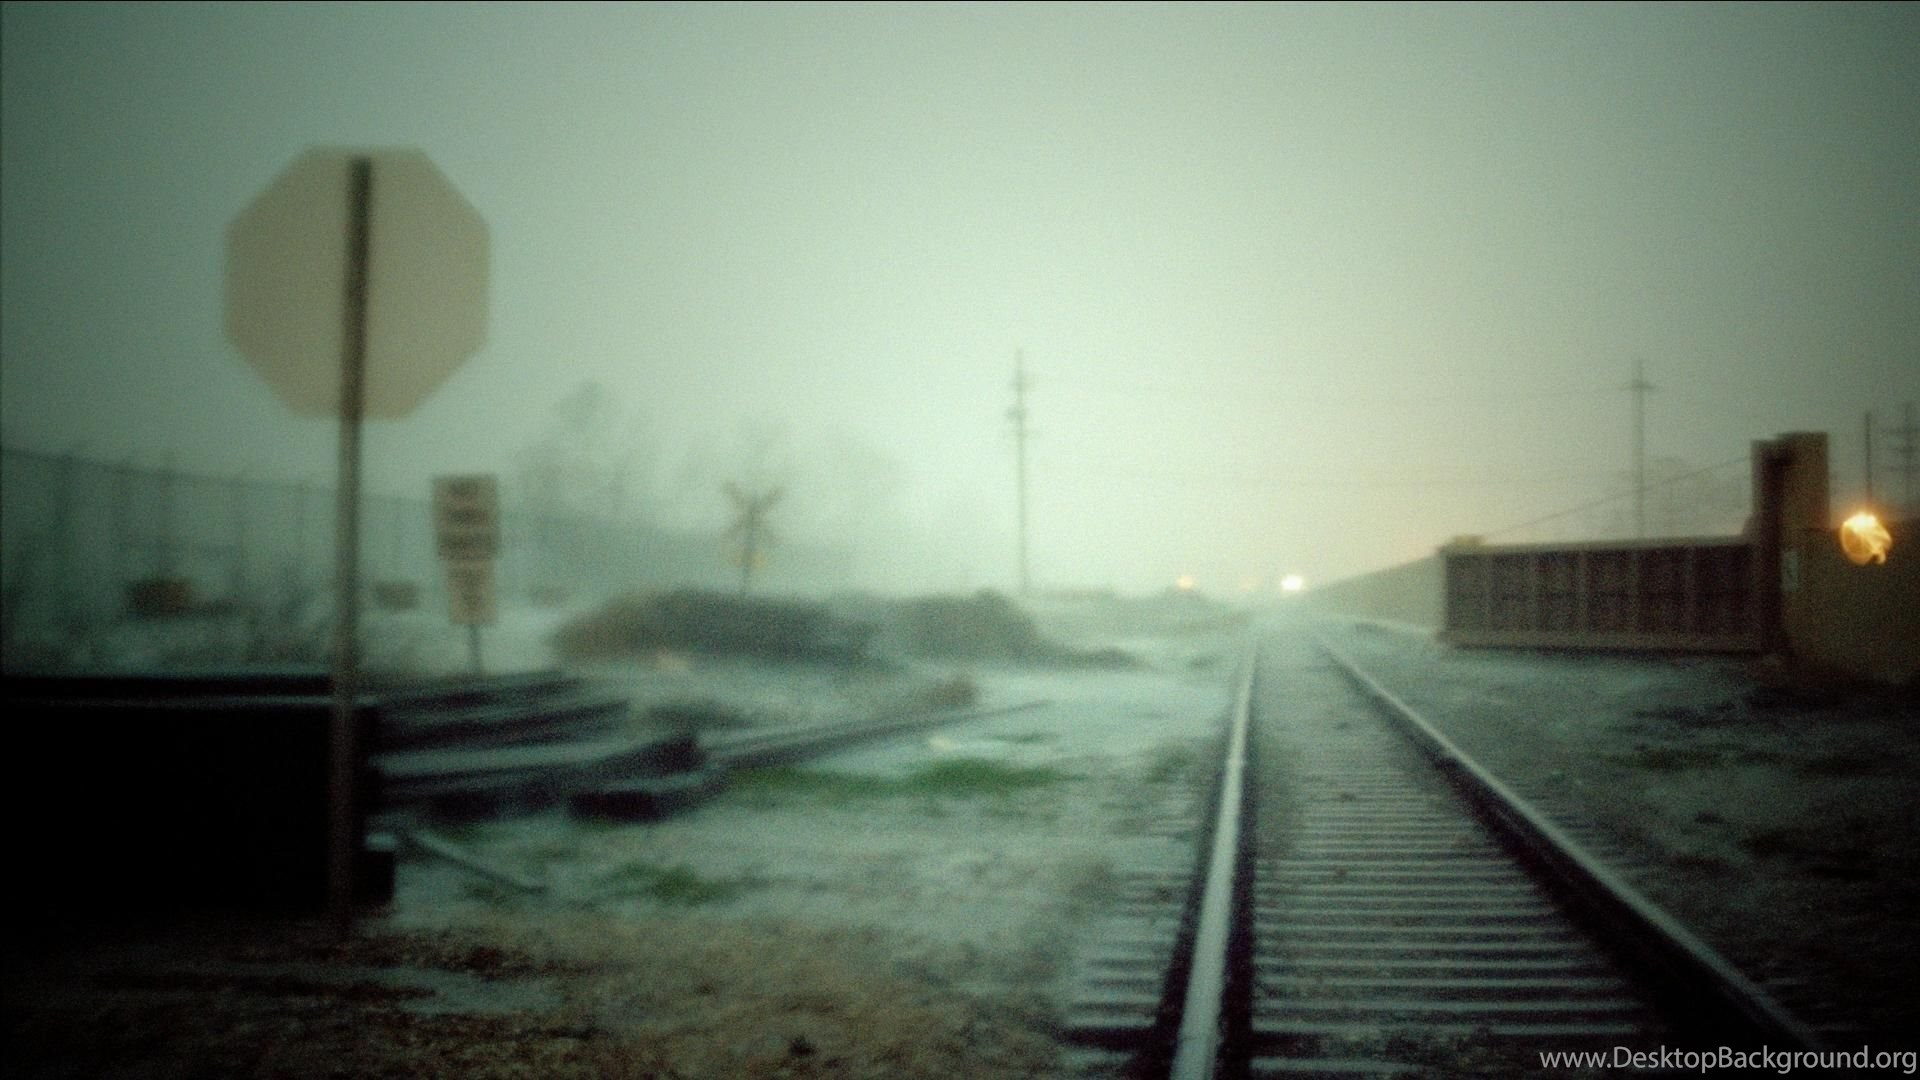 Train Rail Track Cool Photography Backgrounds Hd Photography Wallpapers Jpg Desktop Background